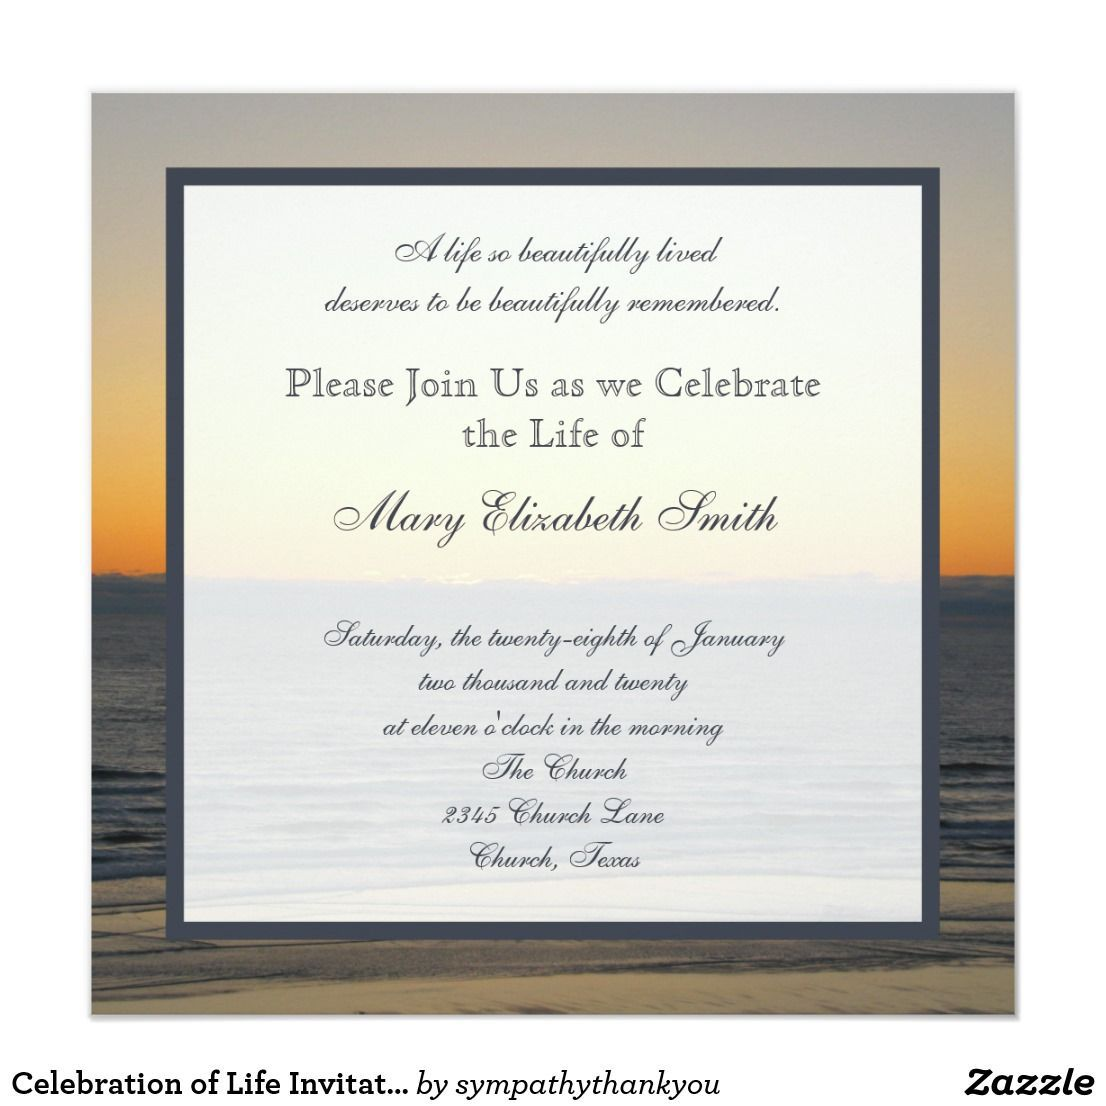 004 Amazing Celebration Of Life Invite Template Free Example  Invitation DownloadFull